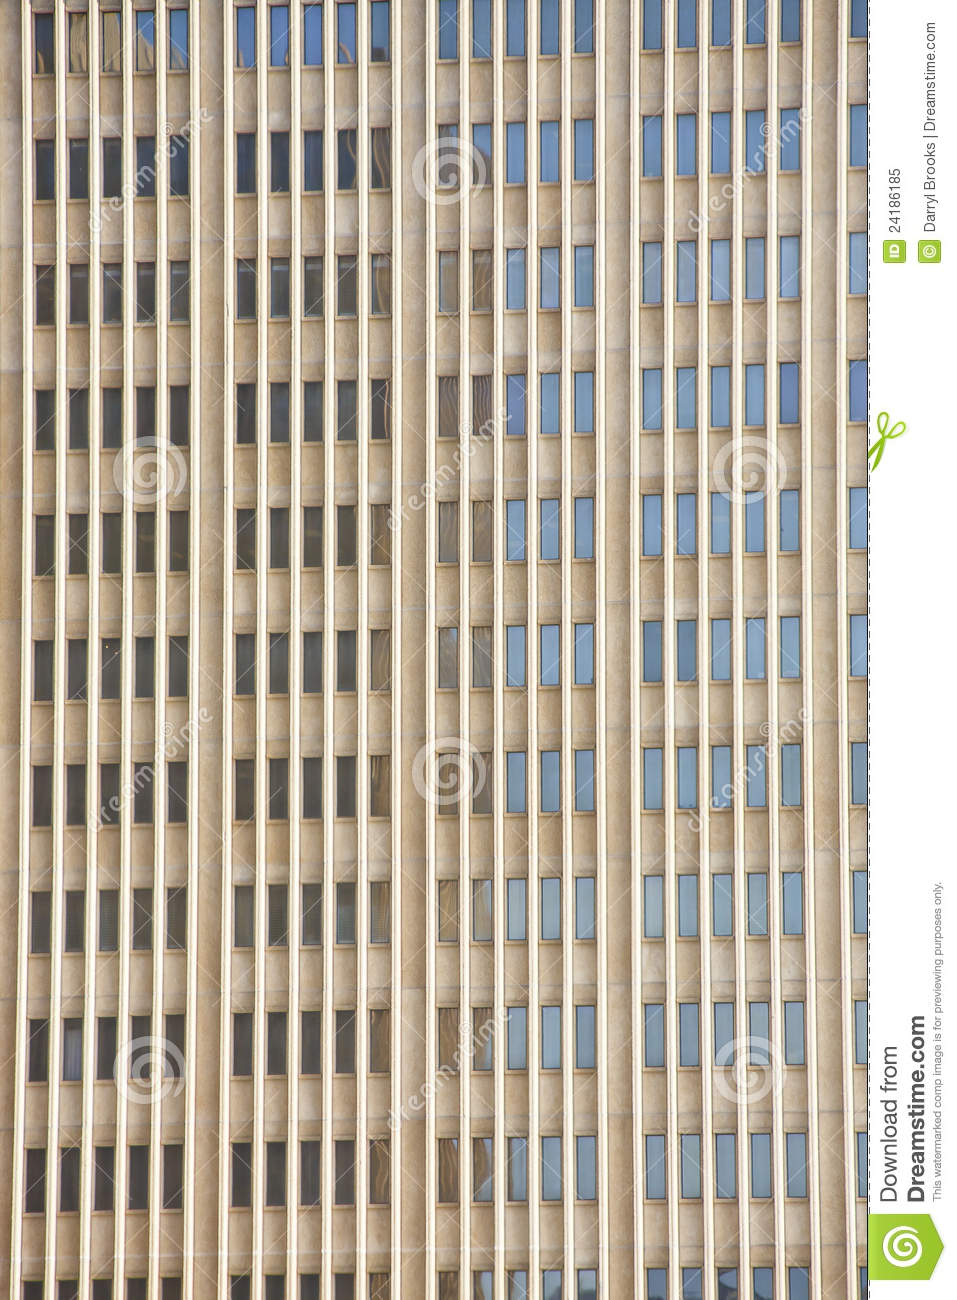 Tall Narrow Windows On Brown Stone Building Royalty Free